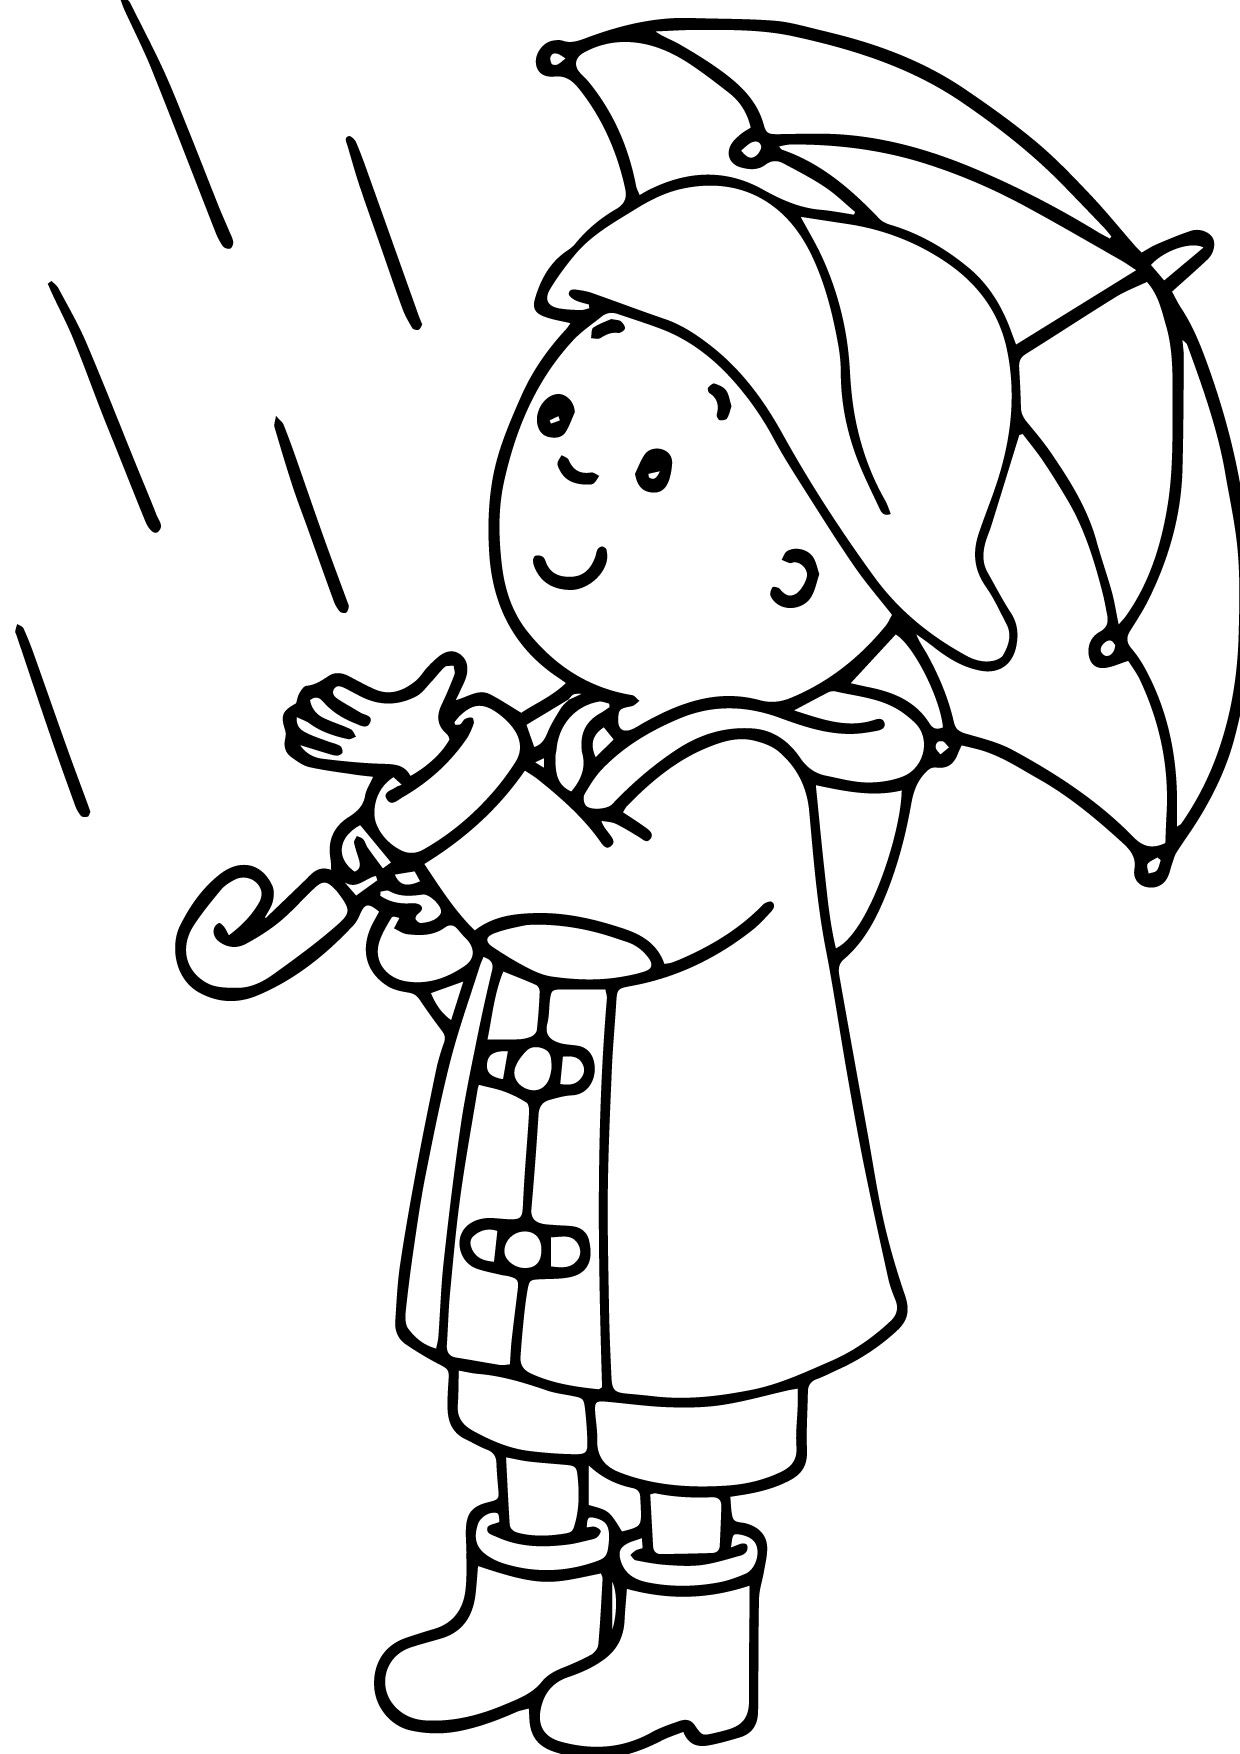 awesome Caillou Play Plane Coloring Page Check more at http://www ...